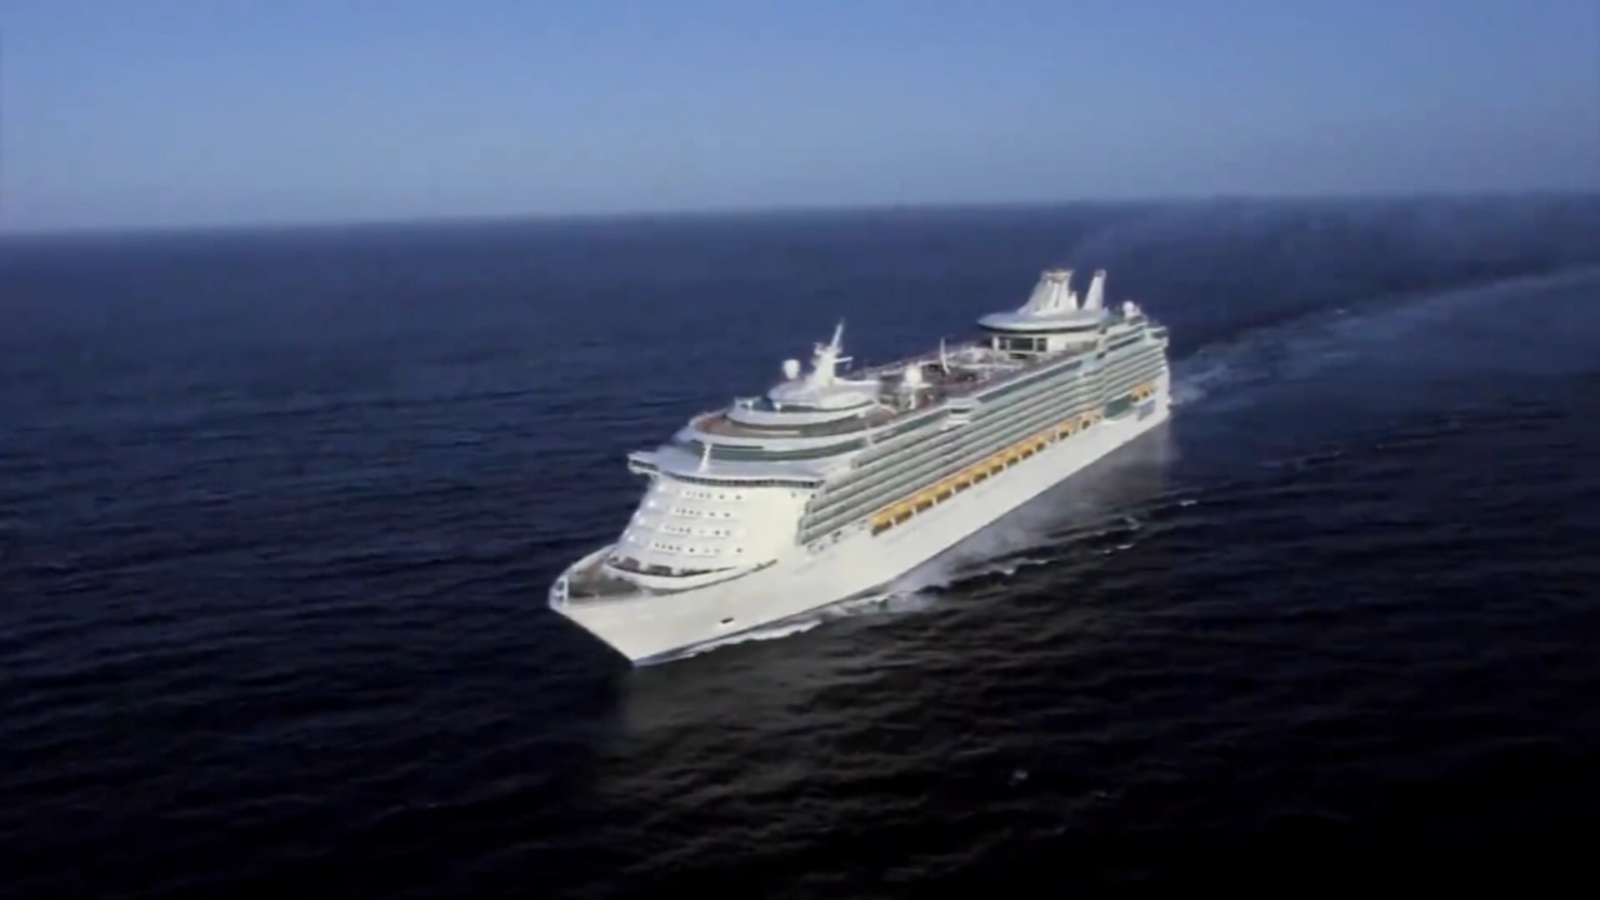 Royal Caribbean extends cruising suspension amid COVID-19 pandemic